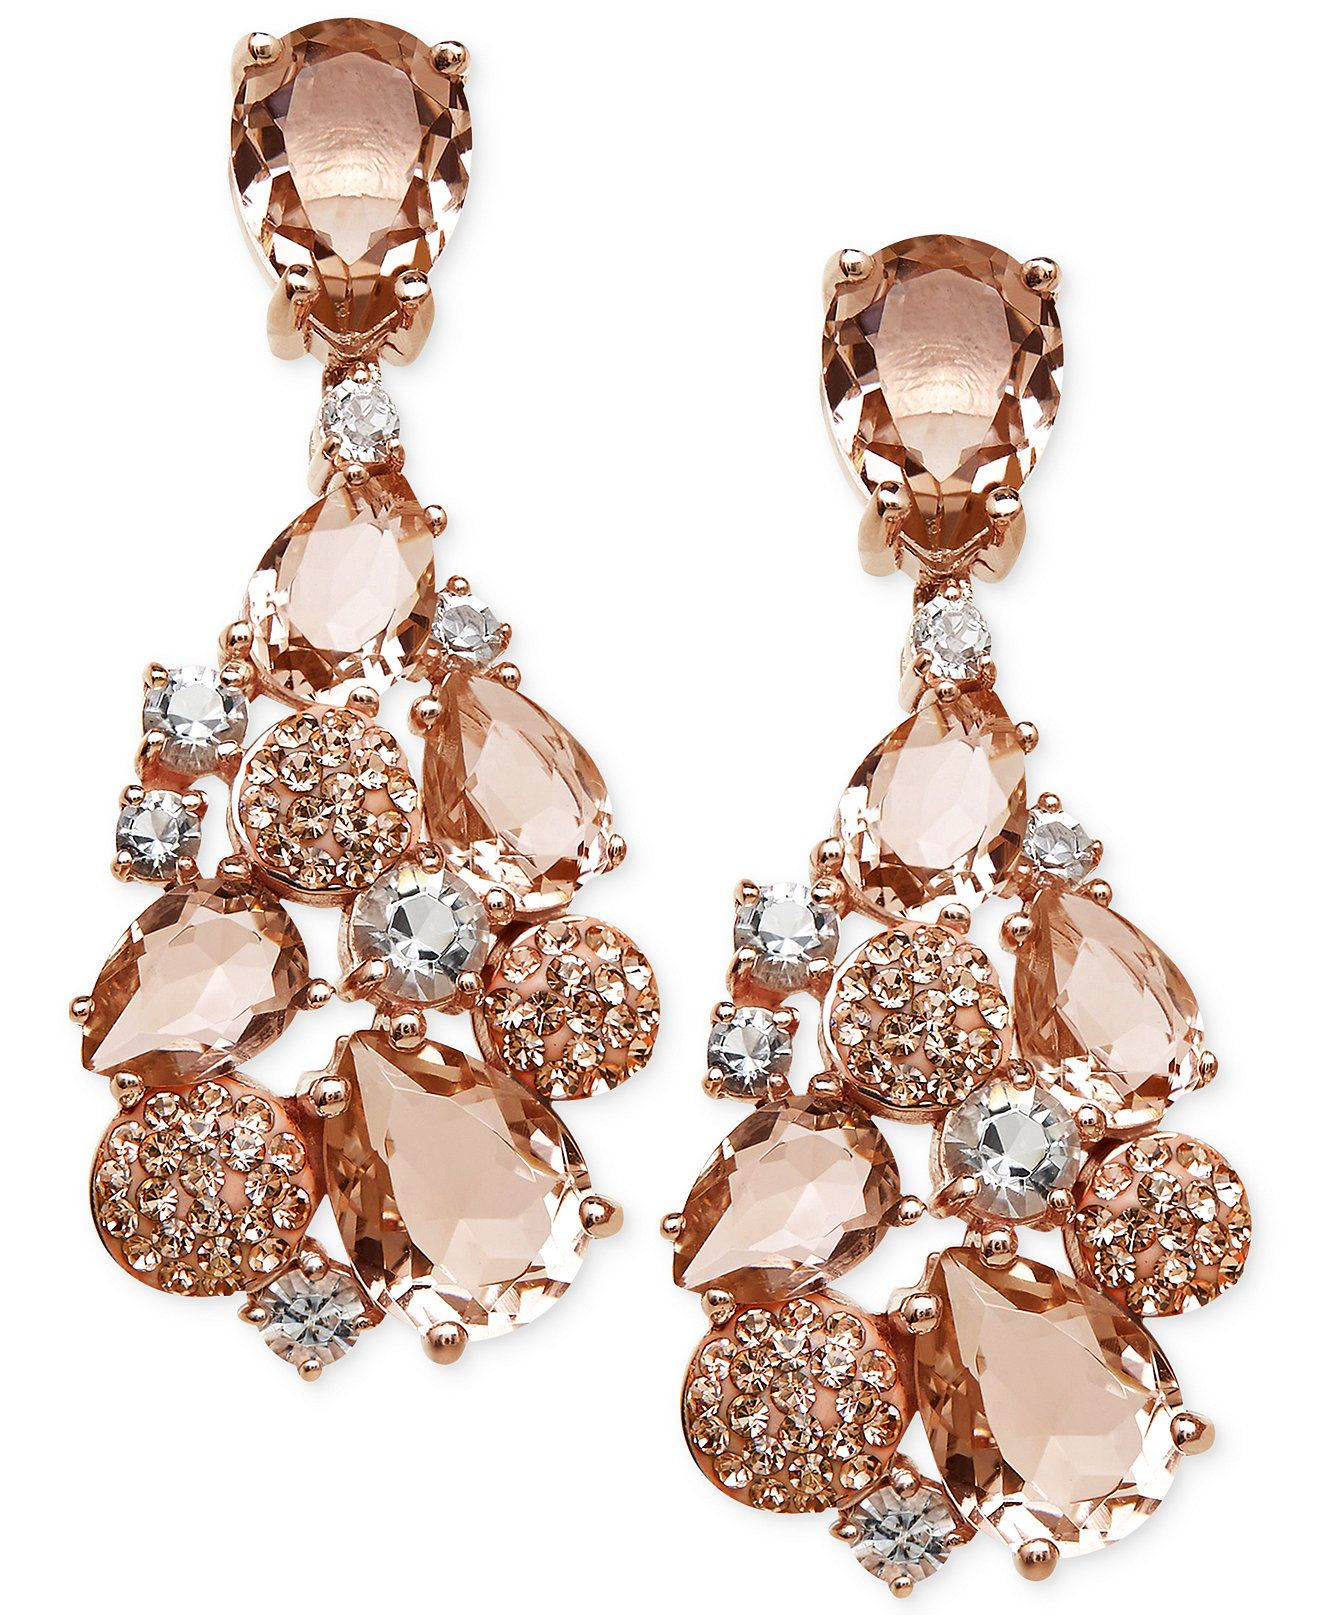 Kaleidoscope Pink Swarovski Crystal Mosaic Drop Earrings In 18k Rose Gold Over Sterling Silver Jewelry Watches Macy S